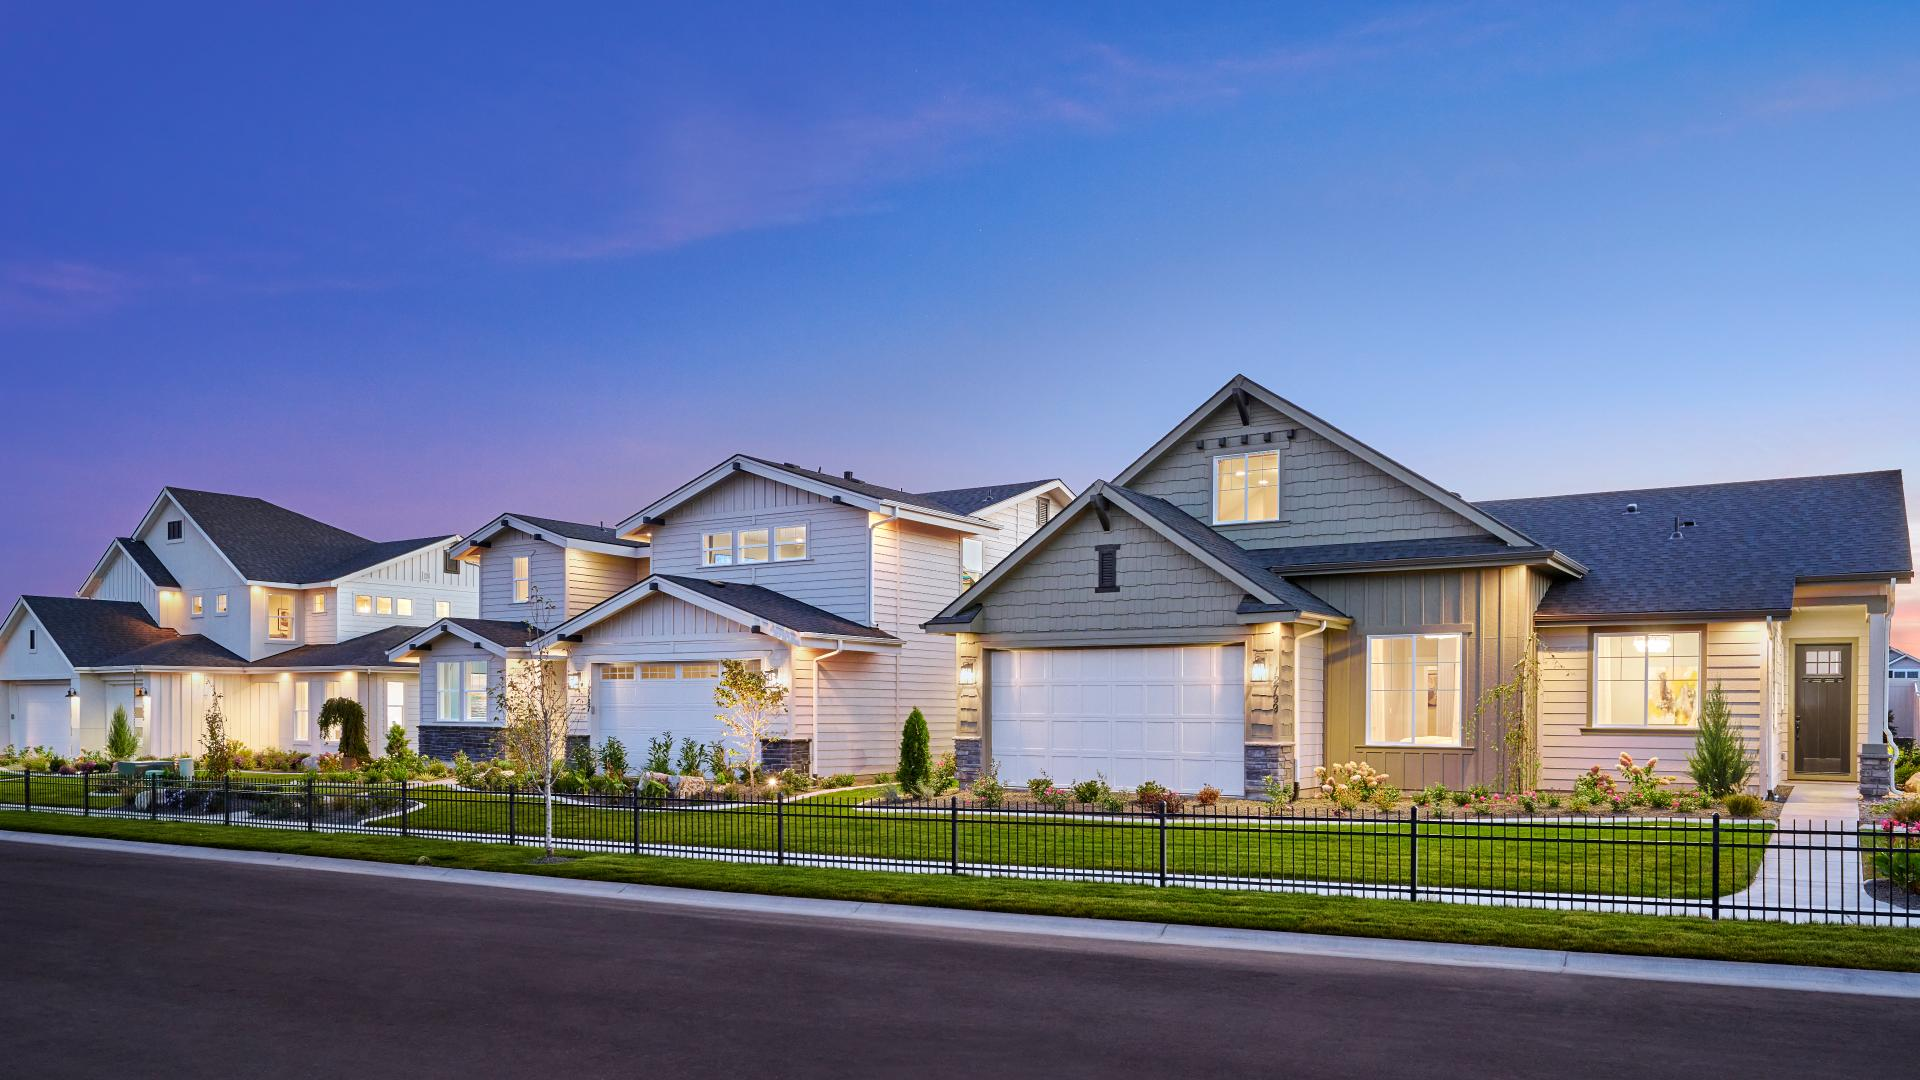 Carriage Hill West model complex in Nampa, Idaho